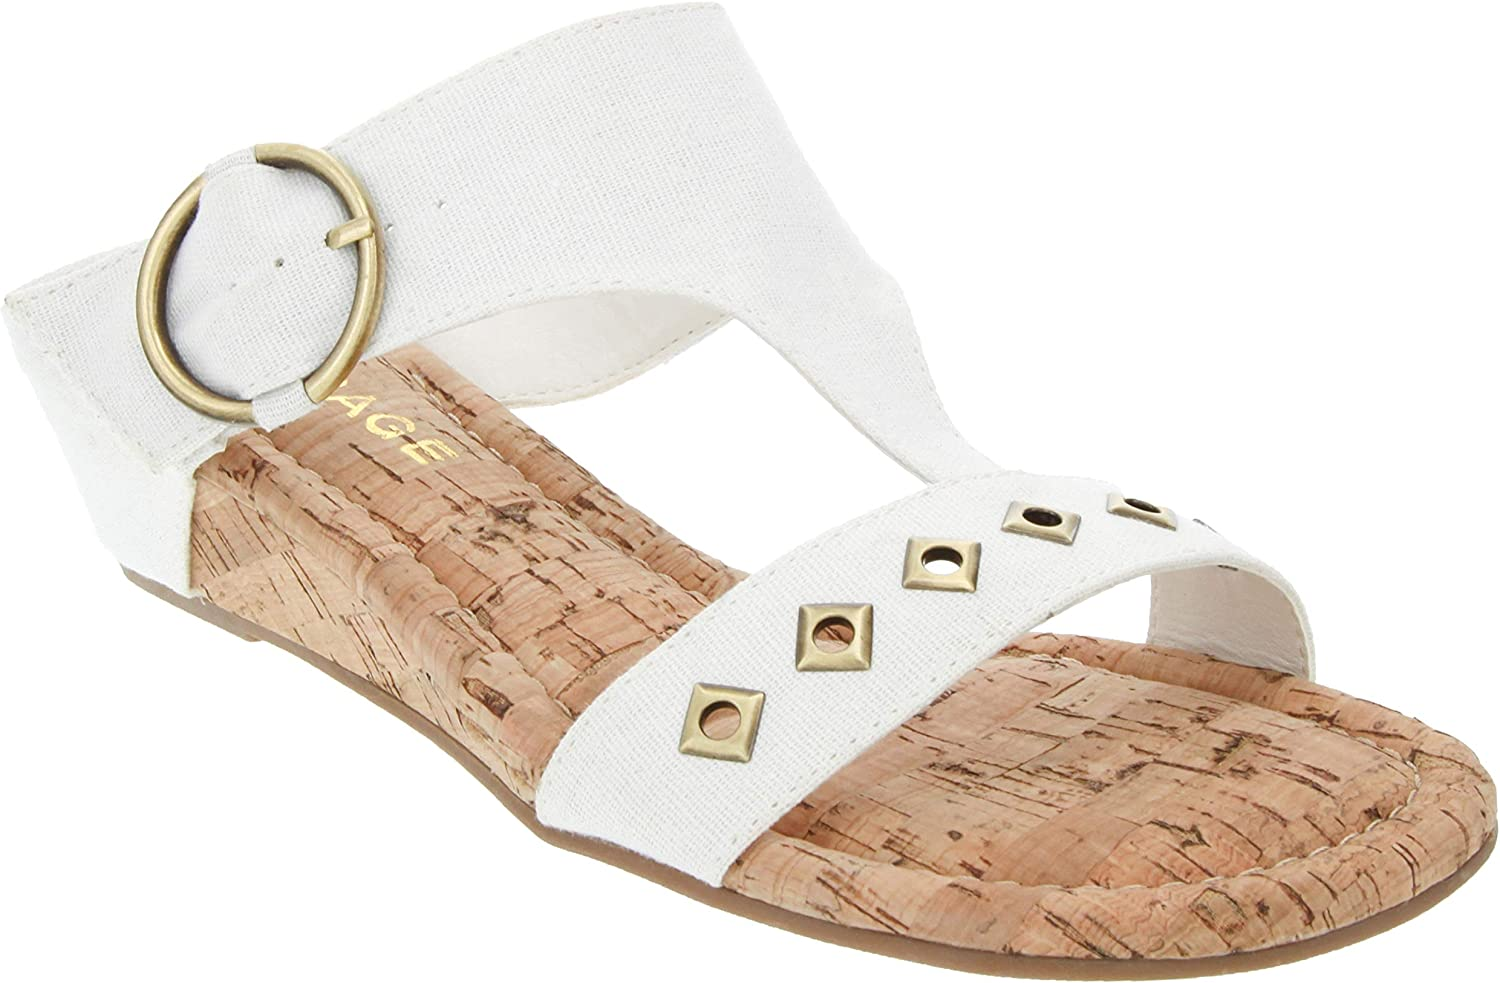 Rampage Women's Simara T Bar Cork Wedge Sandals with O Ring Buckle and Studs